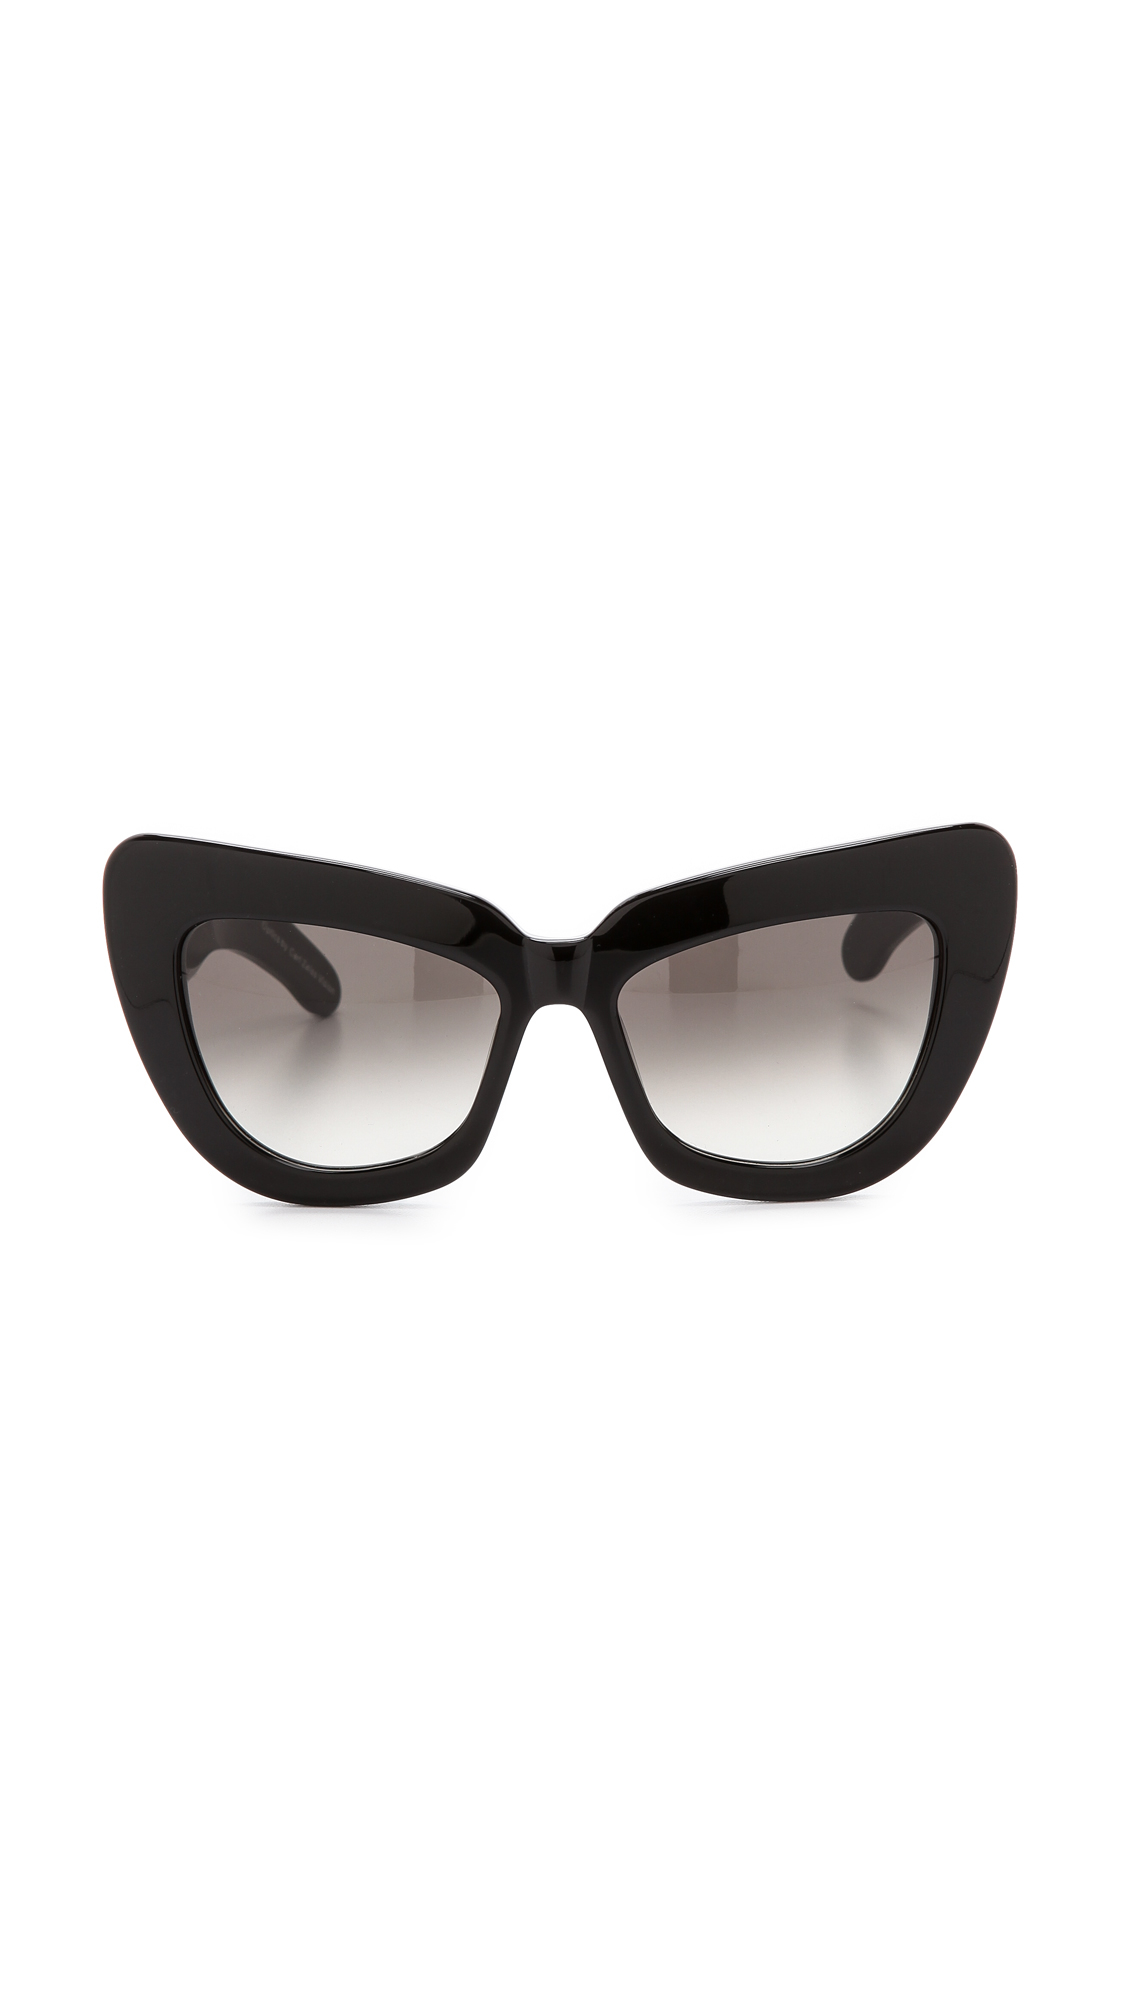 Valley Eyewear Genuis Child Sunglasses - Gloss Black/gradient